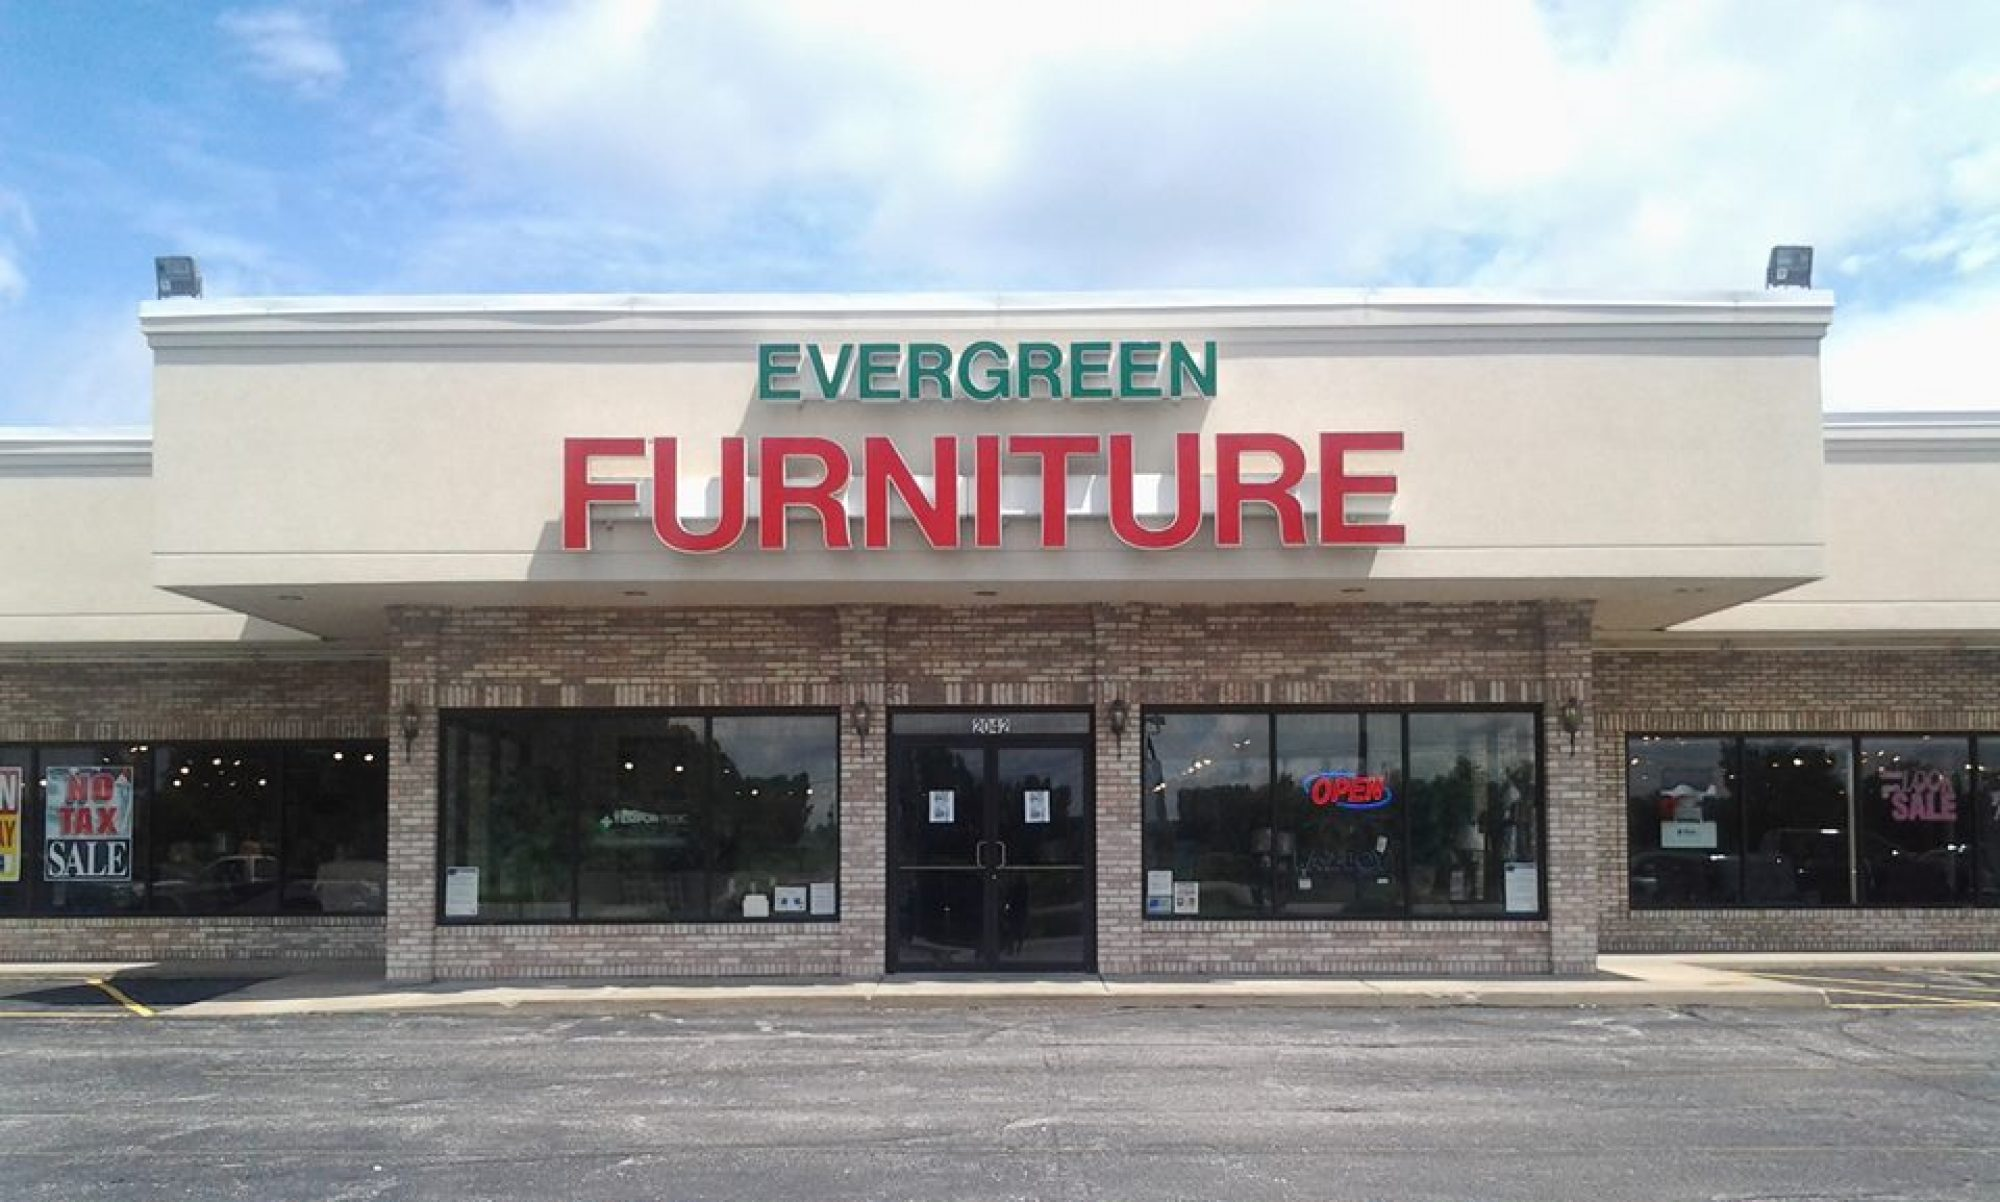 Evergreen Furniture